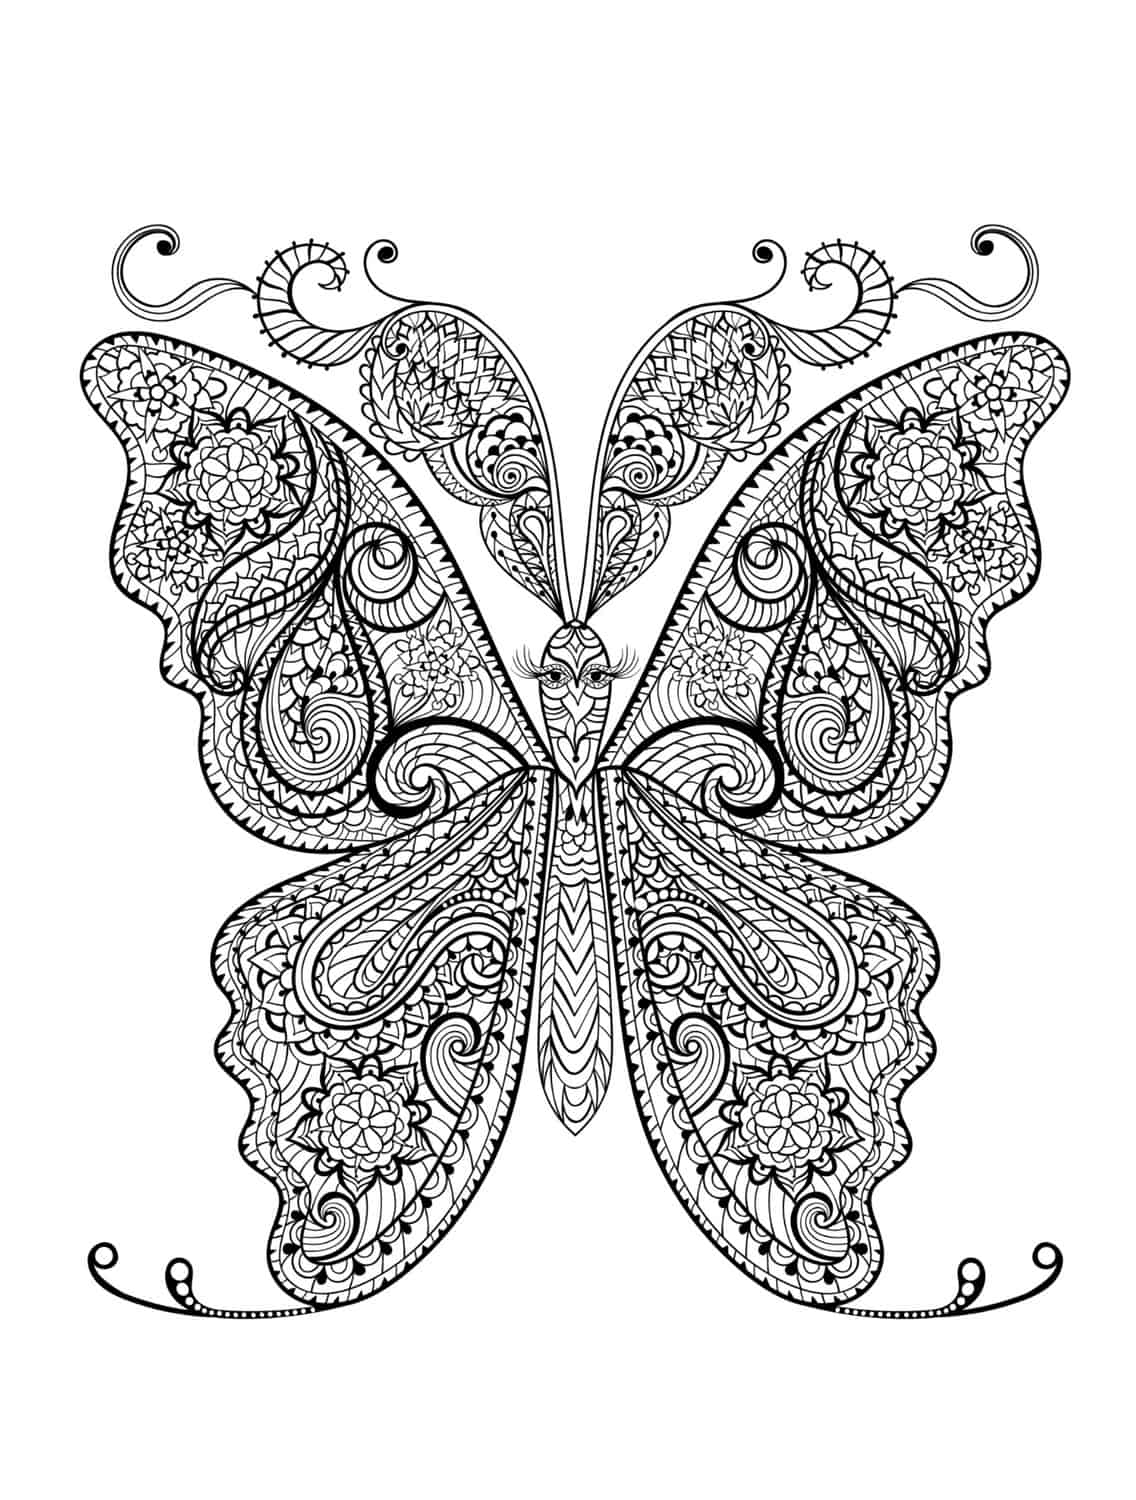 23 Free Printable Insect & Animal Adult Coloring Pages - Page 19 of ...